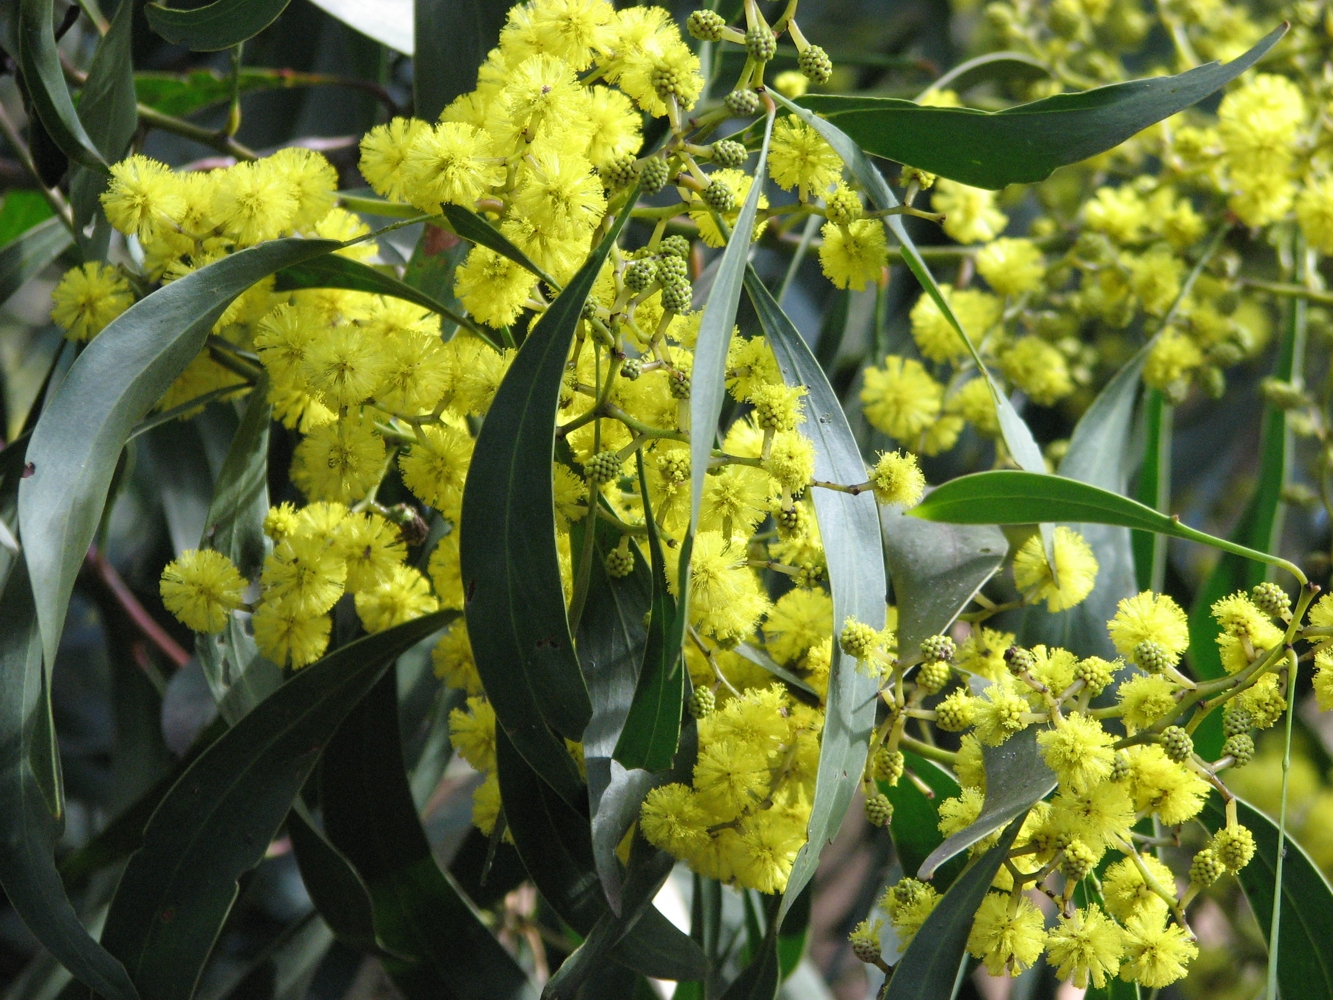 Golden Wattle Pics, Earth Collection